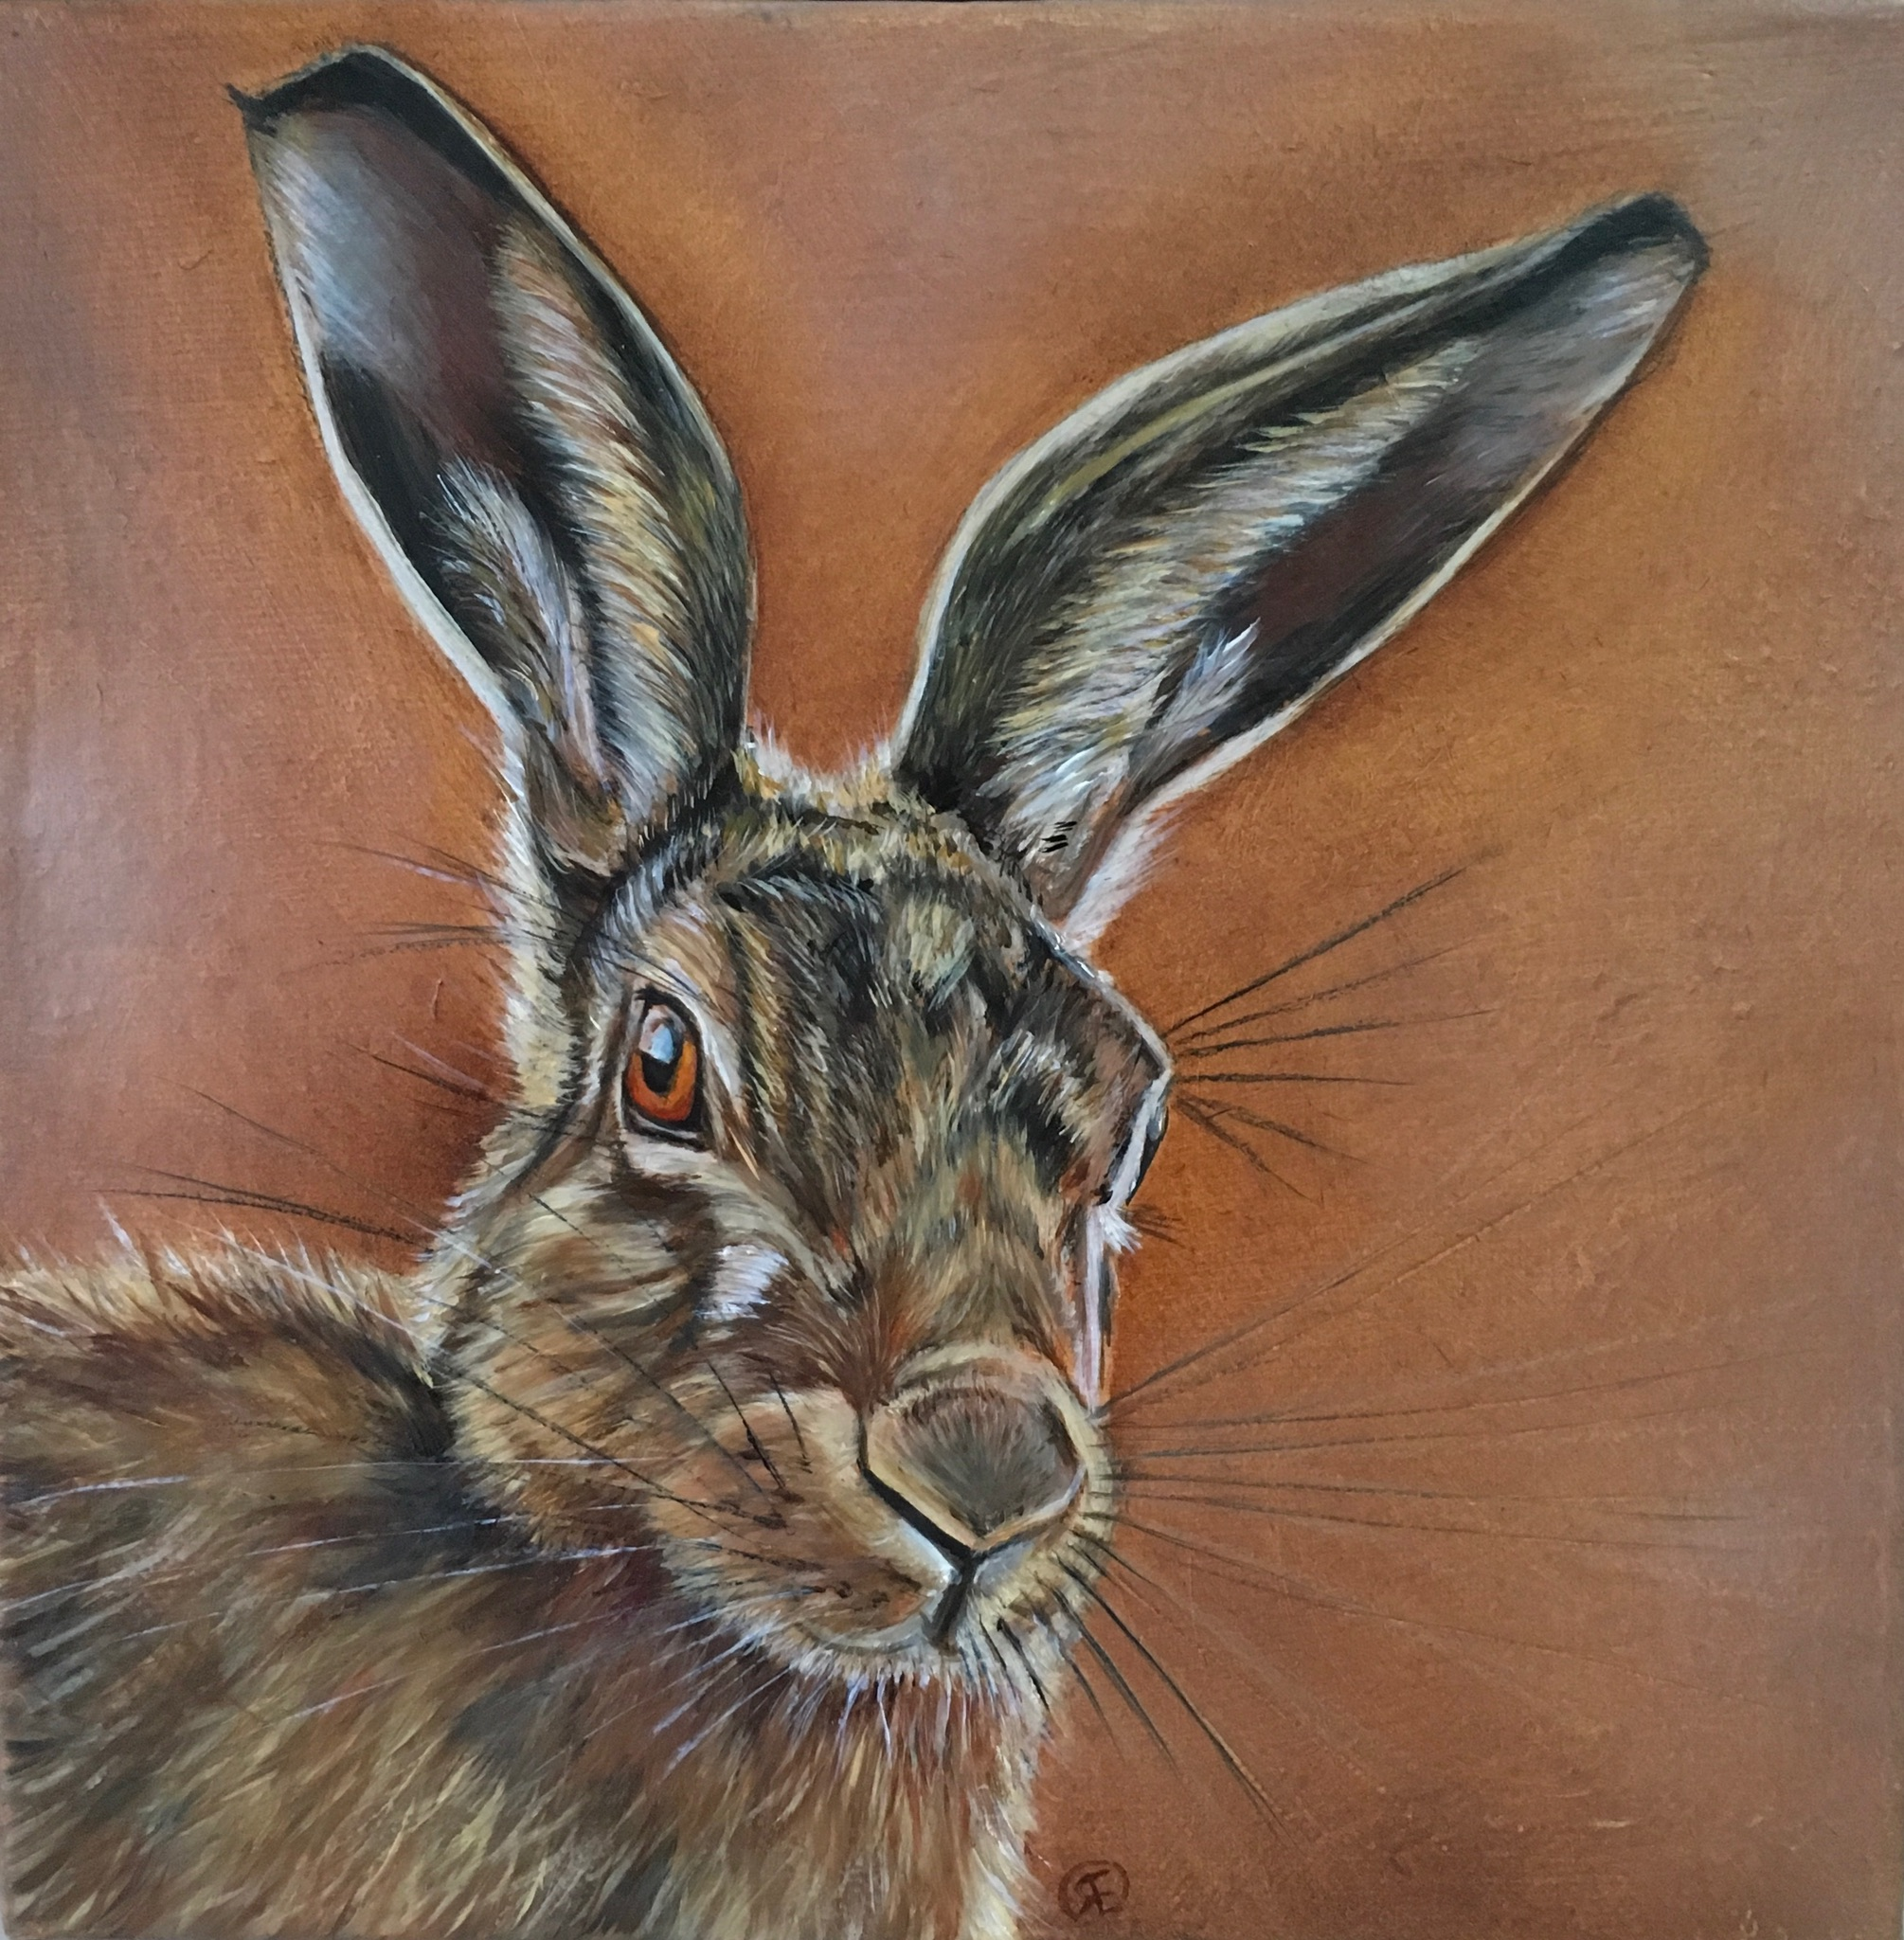 'Henrick' oil hare 20x20 cm for oakhaven hospice charity auction twenty/20 during Hampshire open studio August 2018. Bid for your chance to win by contacting the fundraising department at oakhaven hospice. Photograph reference by Warren Etherington, many thanks.